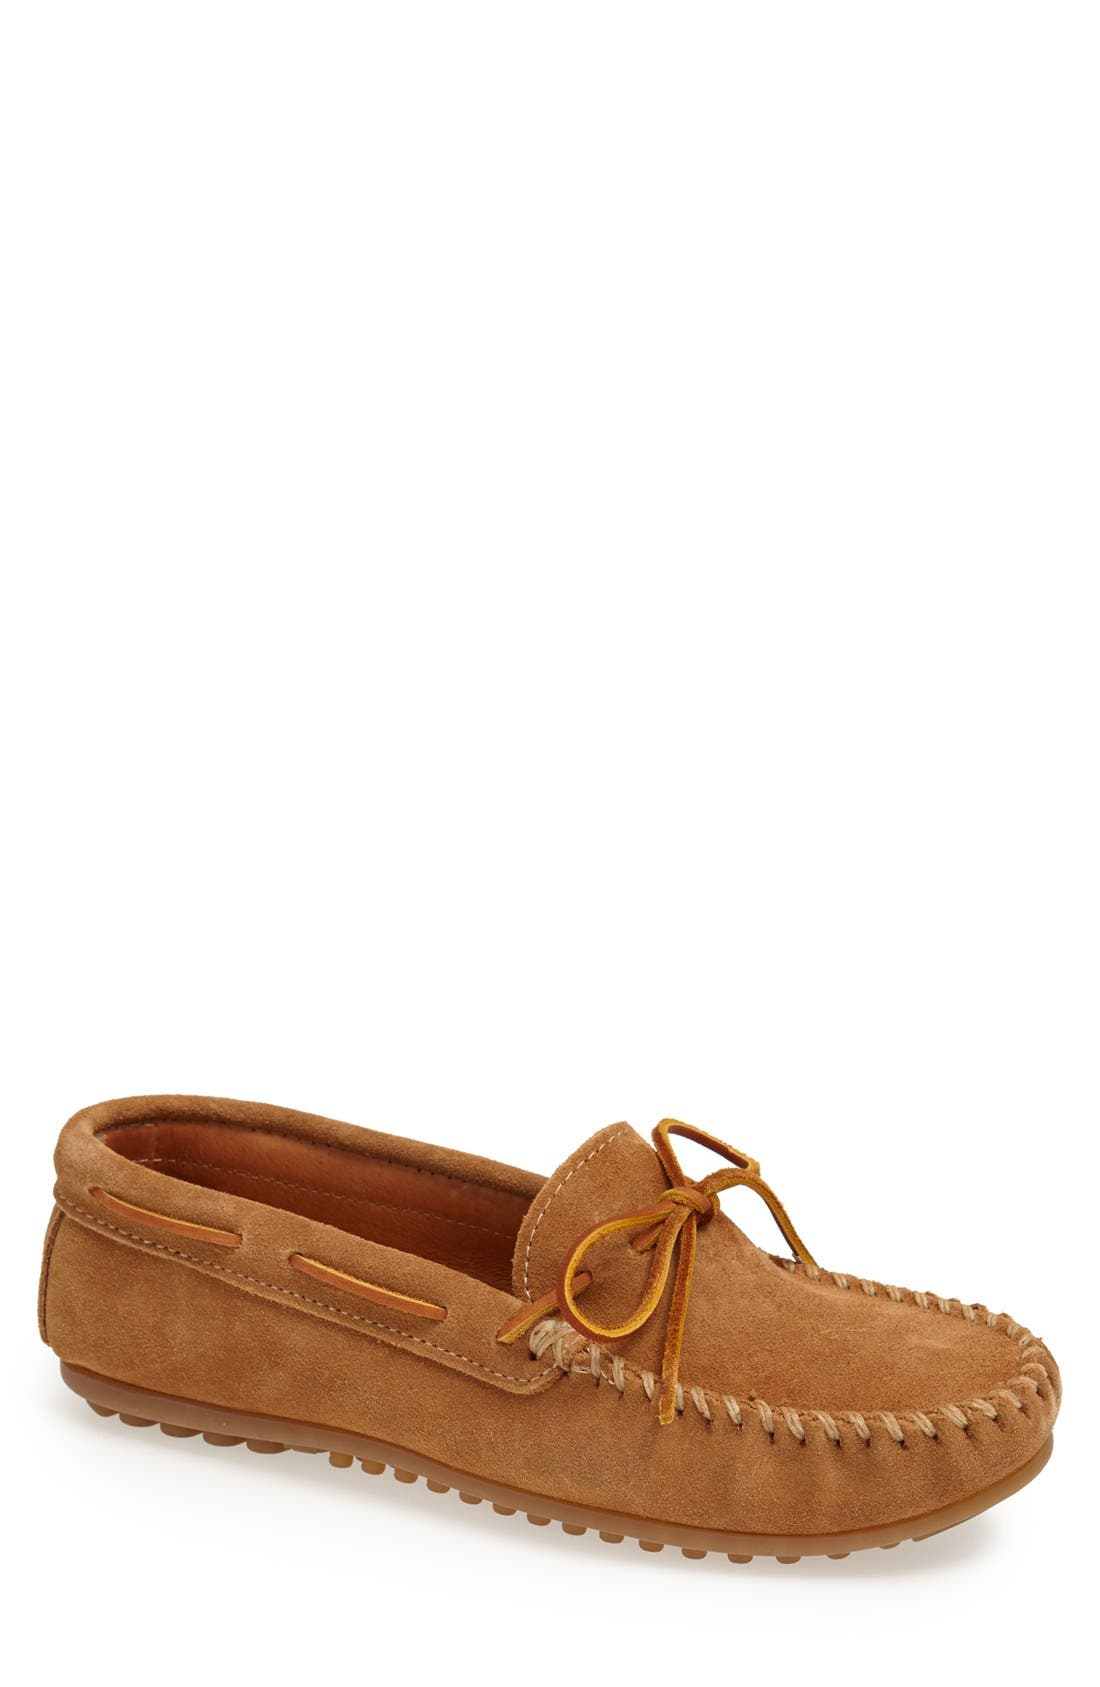 MINNETONKA Suede Driving Shoe, Main, color, TAUPE